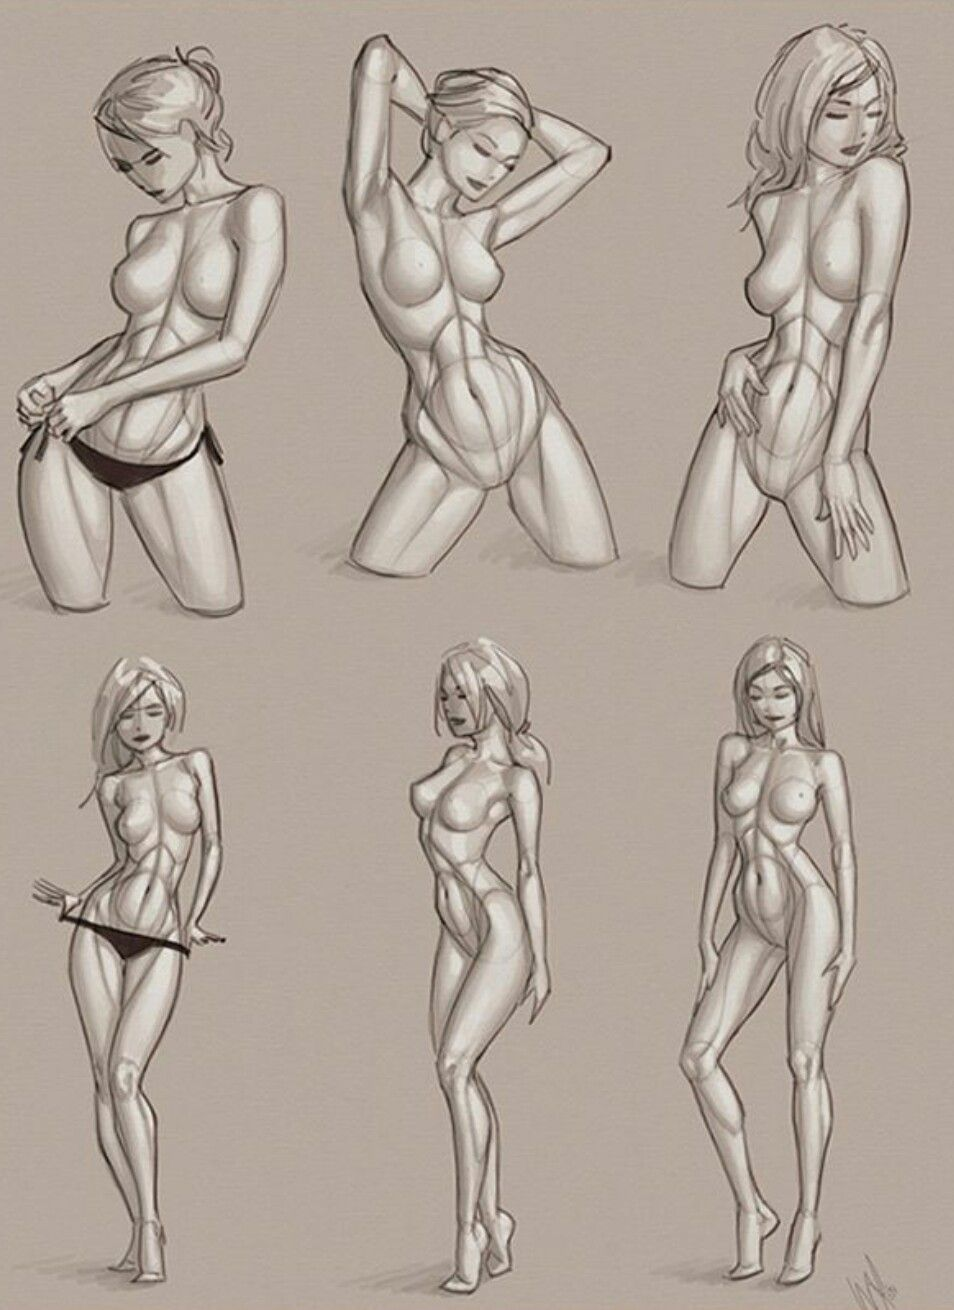 Pin by Francesco Di Paolo on Sketches   Pinterest   Sketches